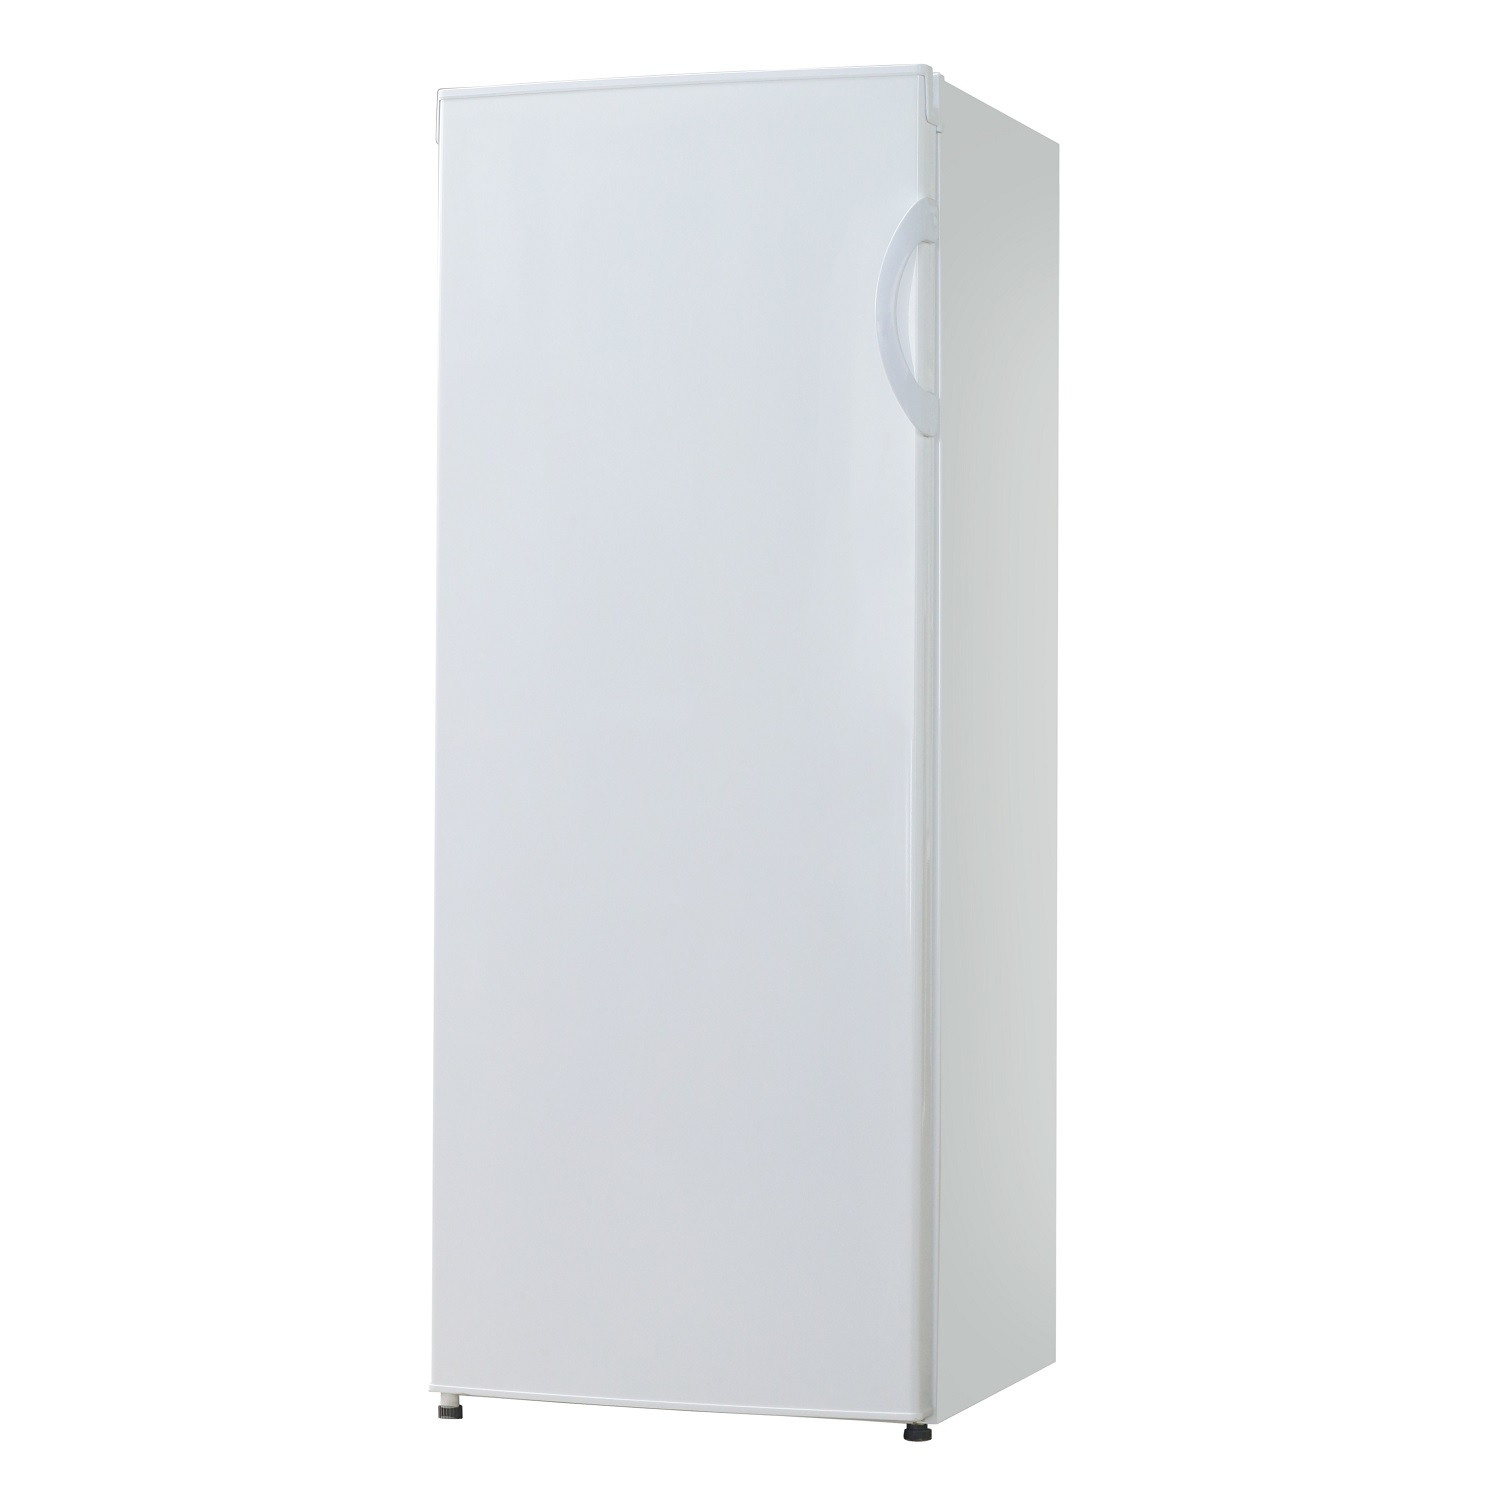 Midea MF172W 172L Upright Freezer